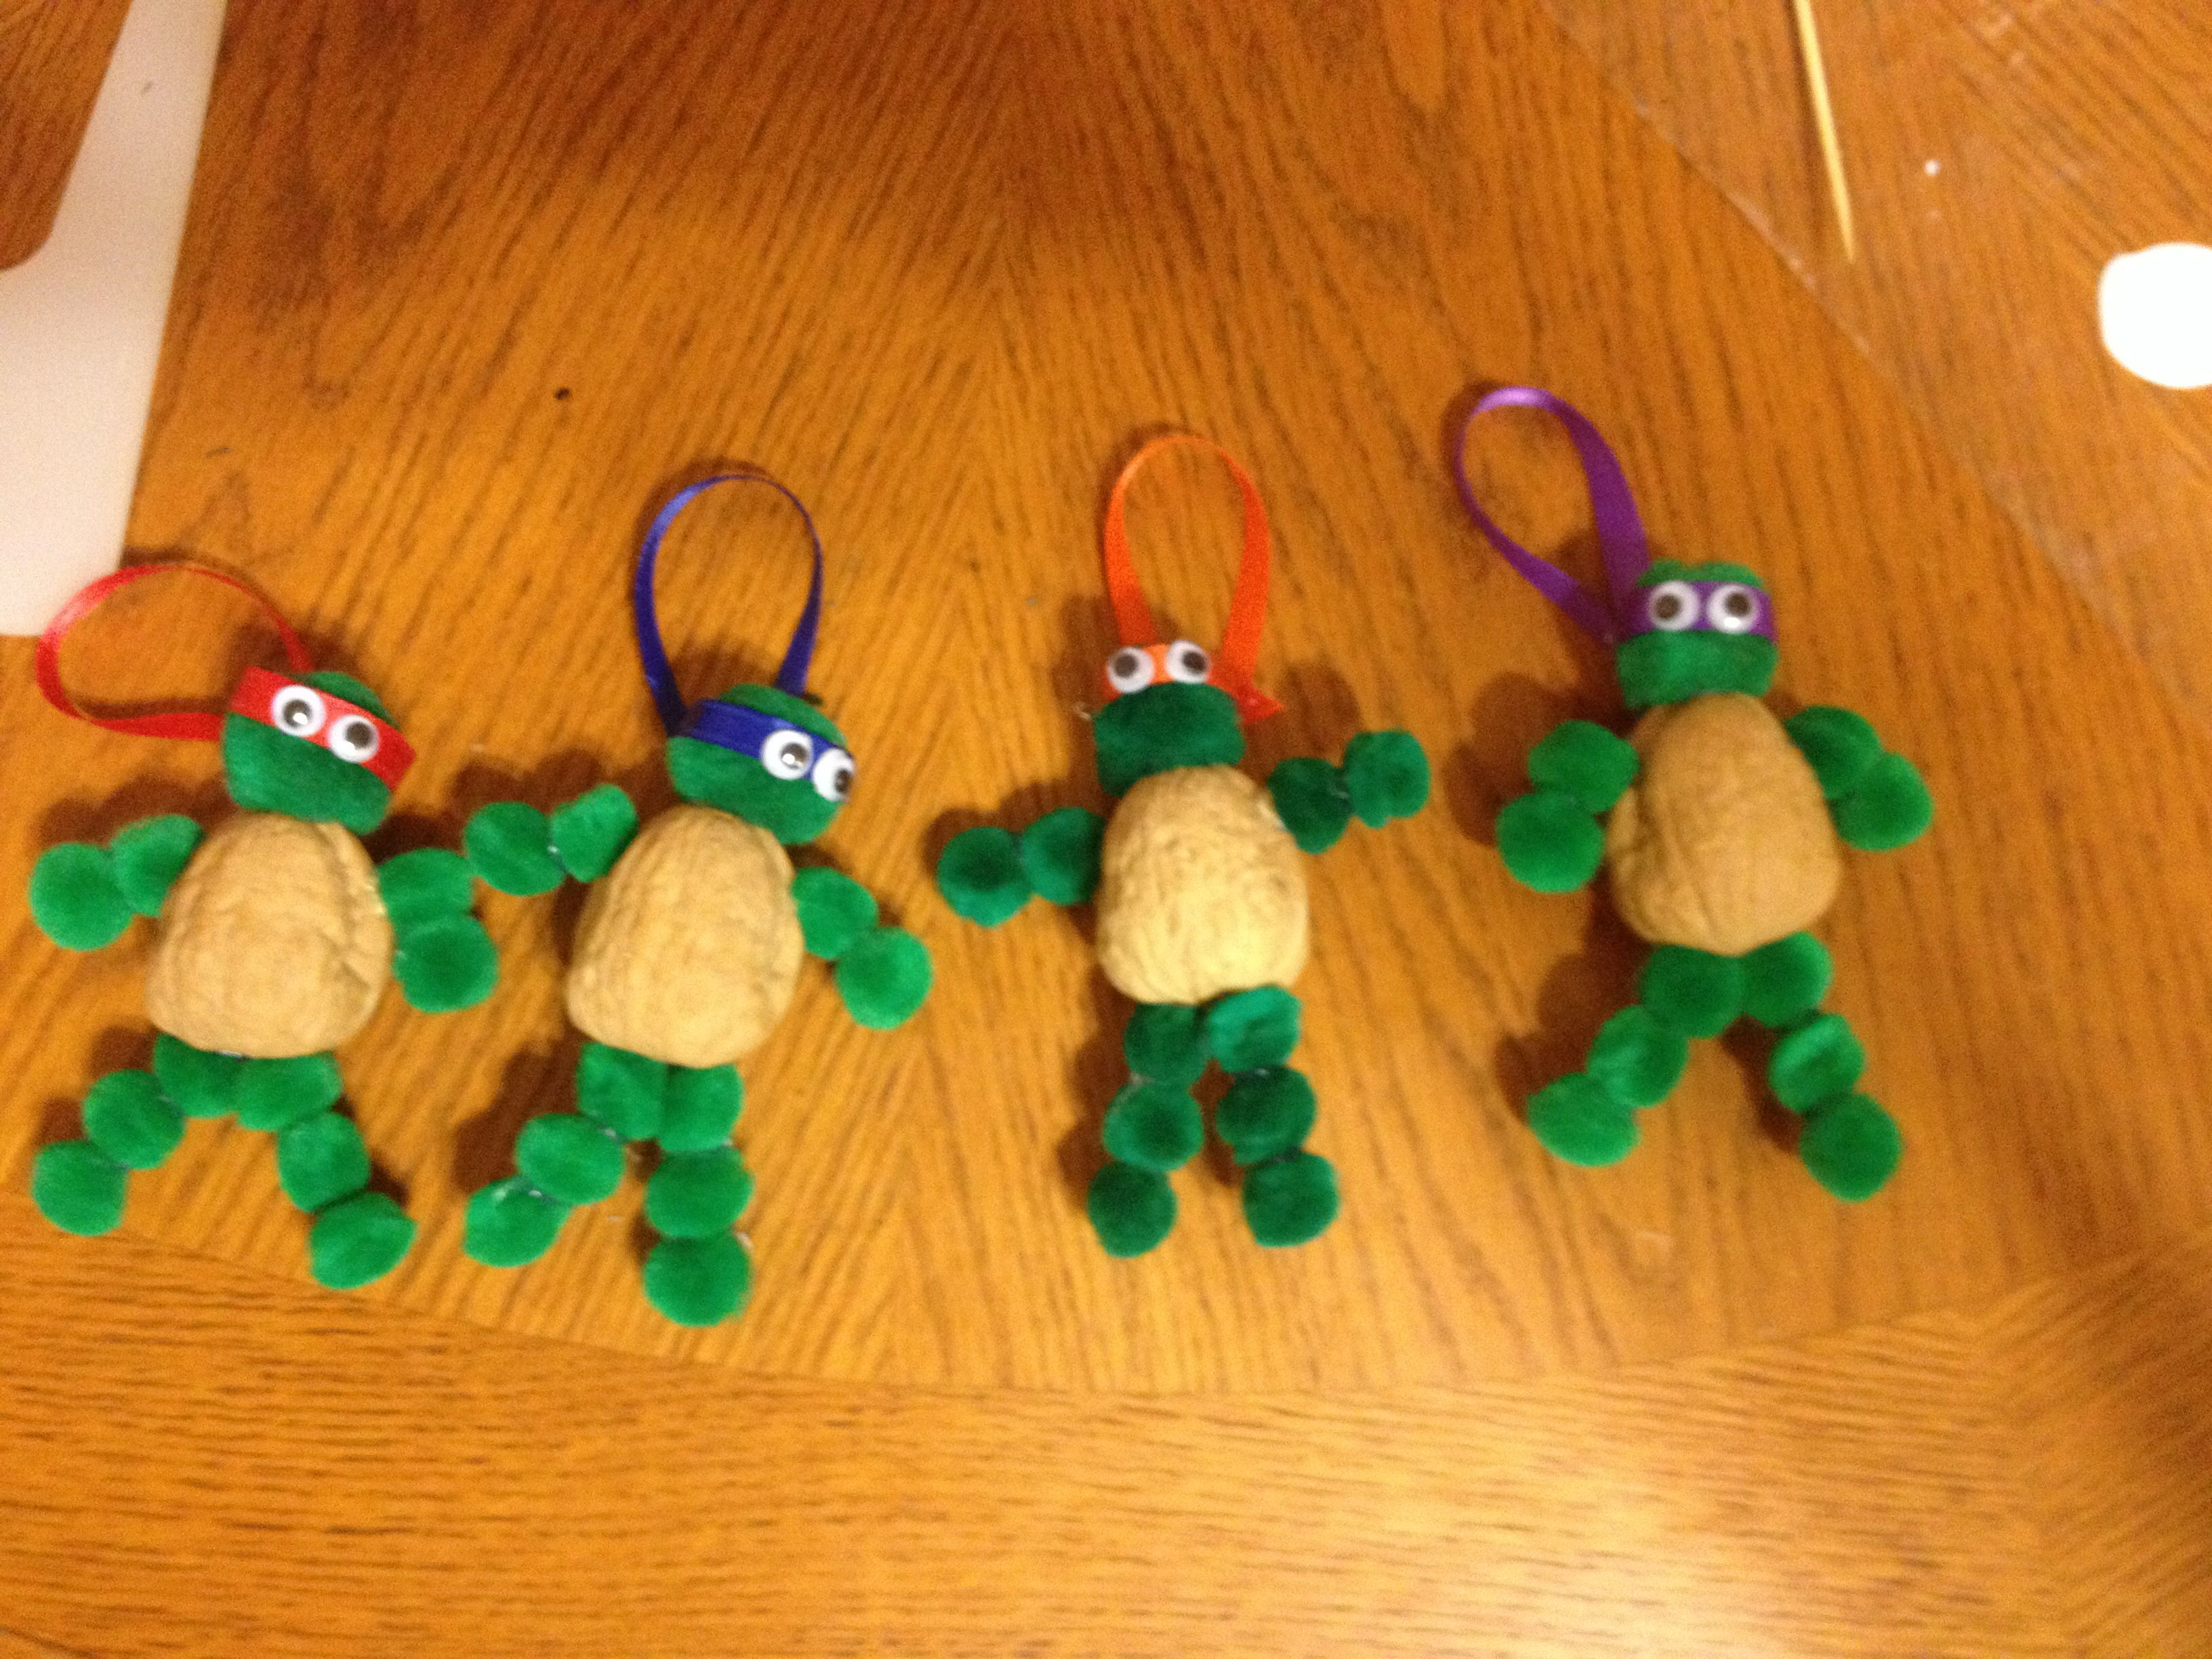 Teenage Mutant Ninja Turtle Ornaments Just Finished Making Requirements Pom Poms Walnuts